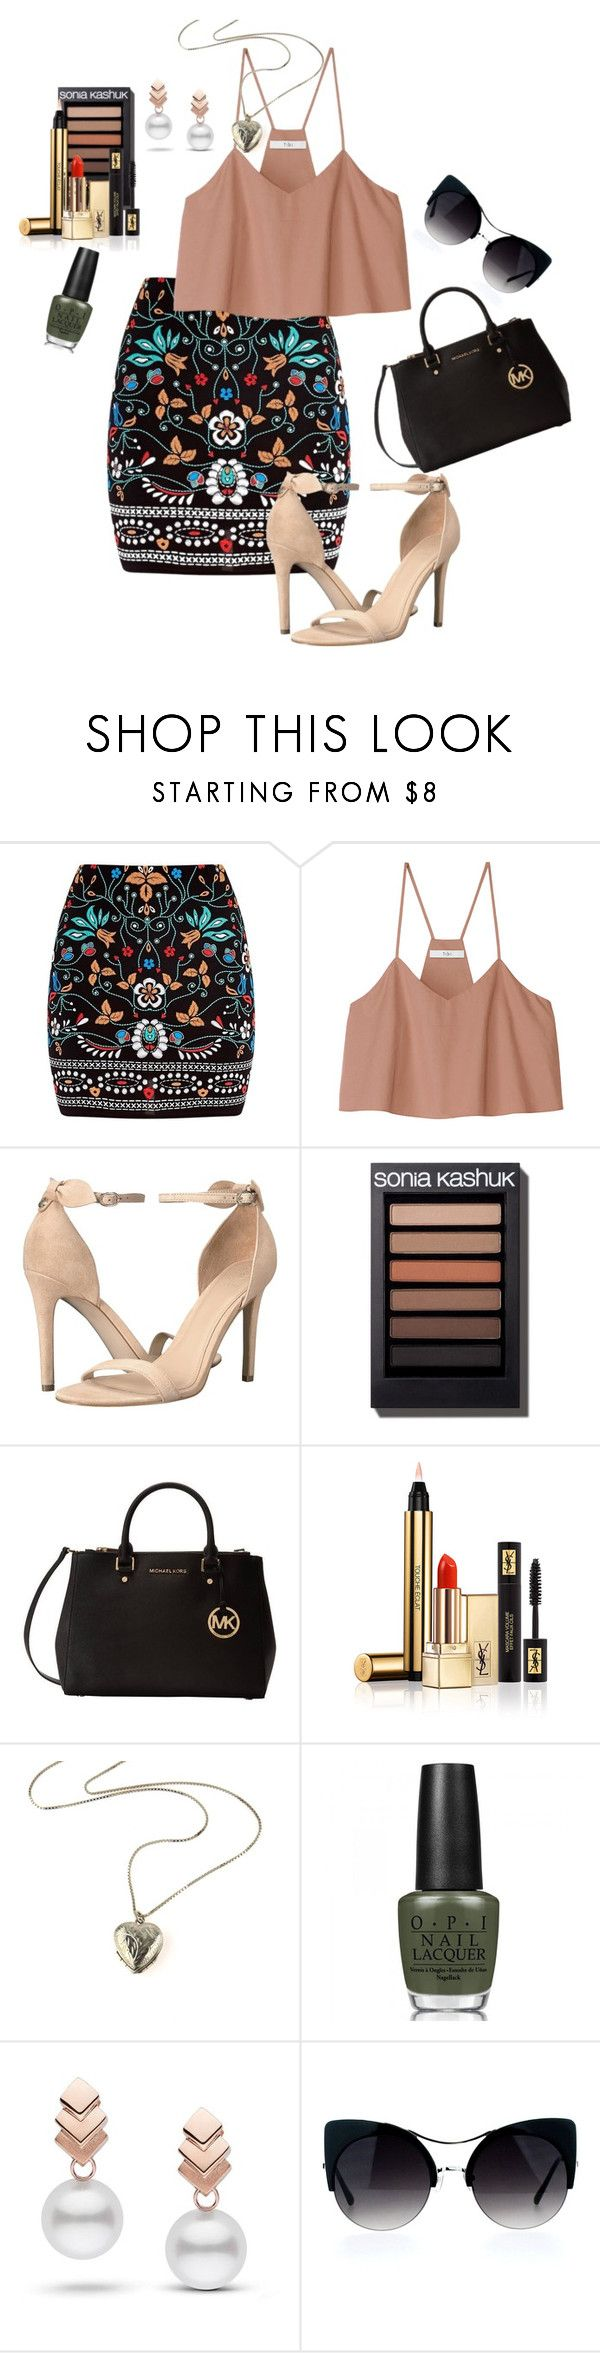 """Floral"" by moge-tan ❤ liked on Polyvore featuring Marni, TIBI, GUESS, Michael Kors, Yves Saint Laurent, OPI and Escalier"